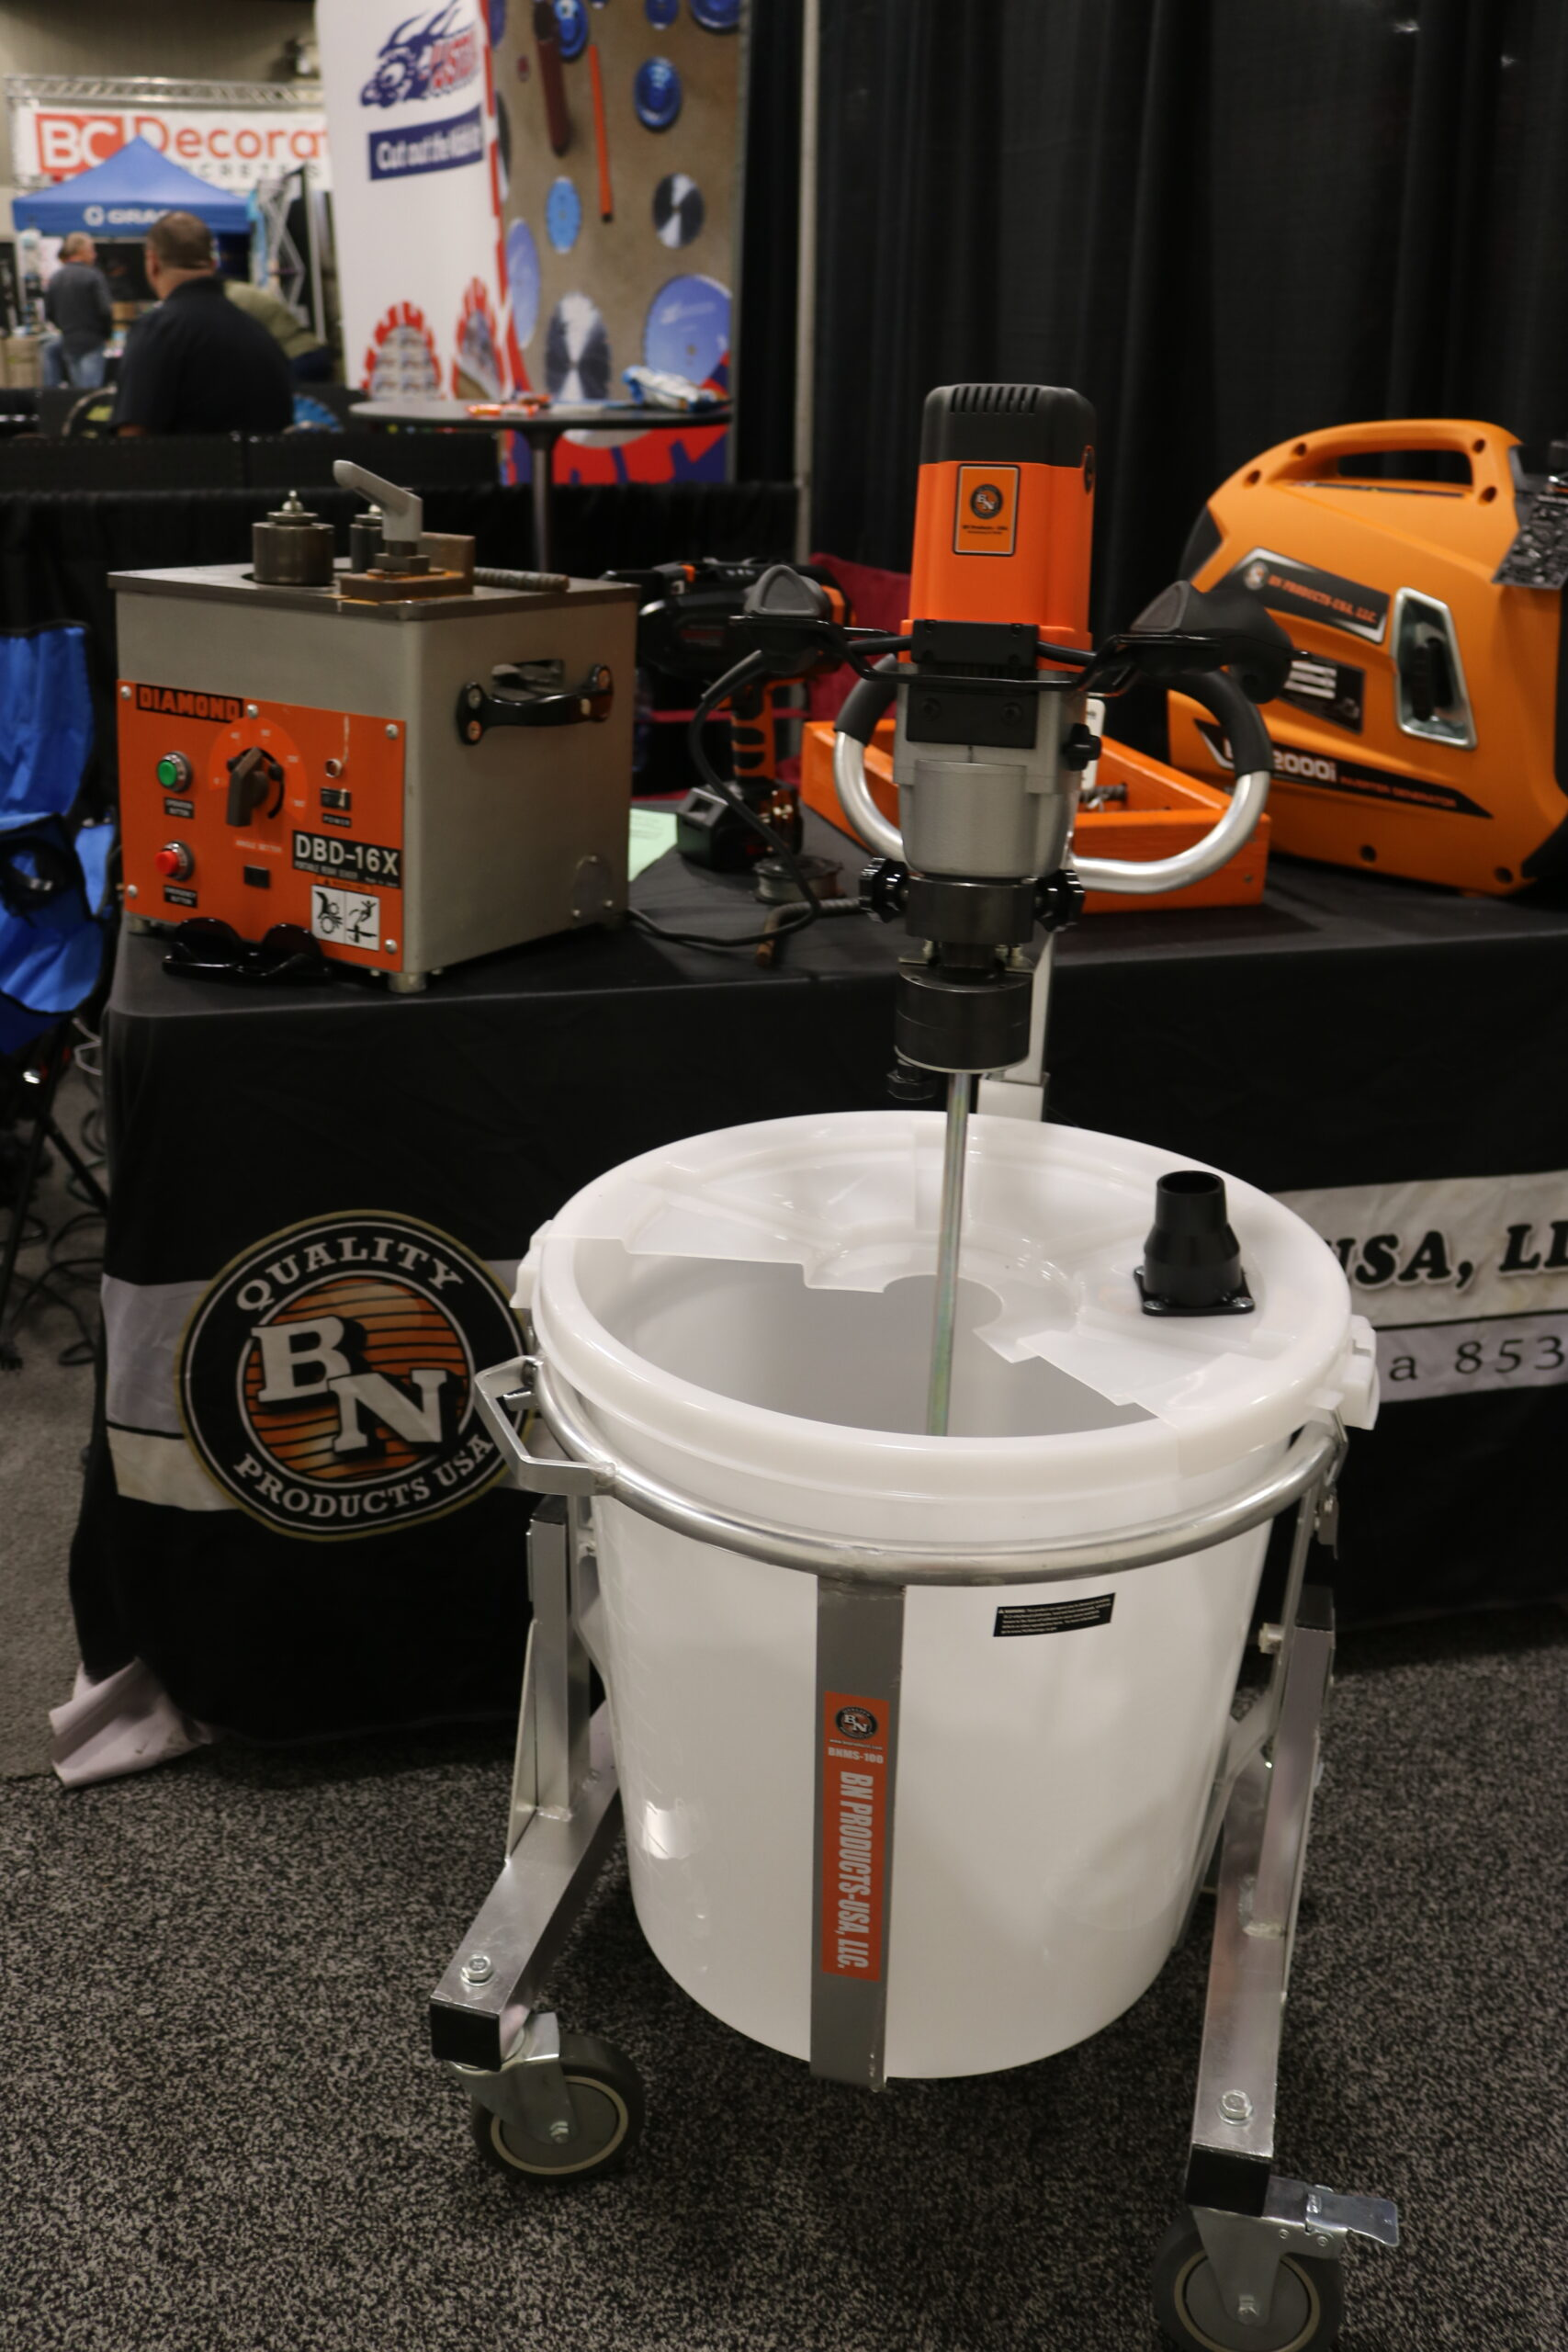 the ultimate mixer combo that can blend up to 220 pounds of self-leveling materials by BN Products USA.